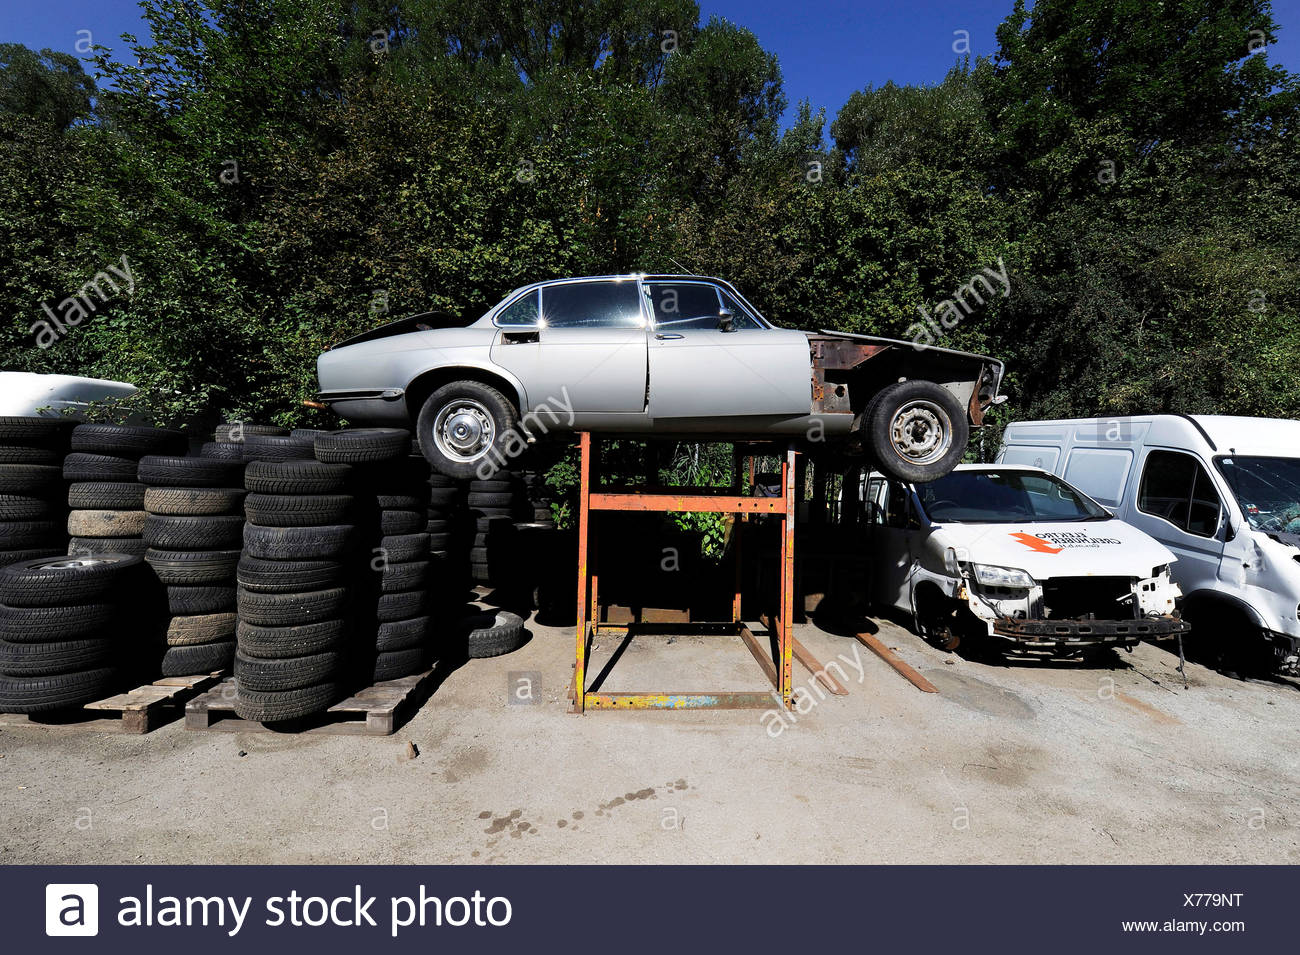 Wrecked cars and tyres in a junkyard, car recycling Stock Photo ...